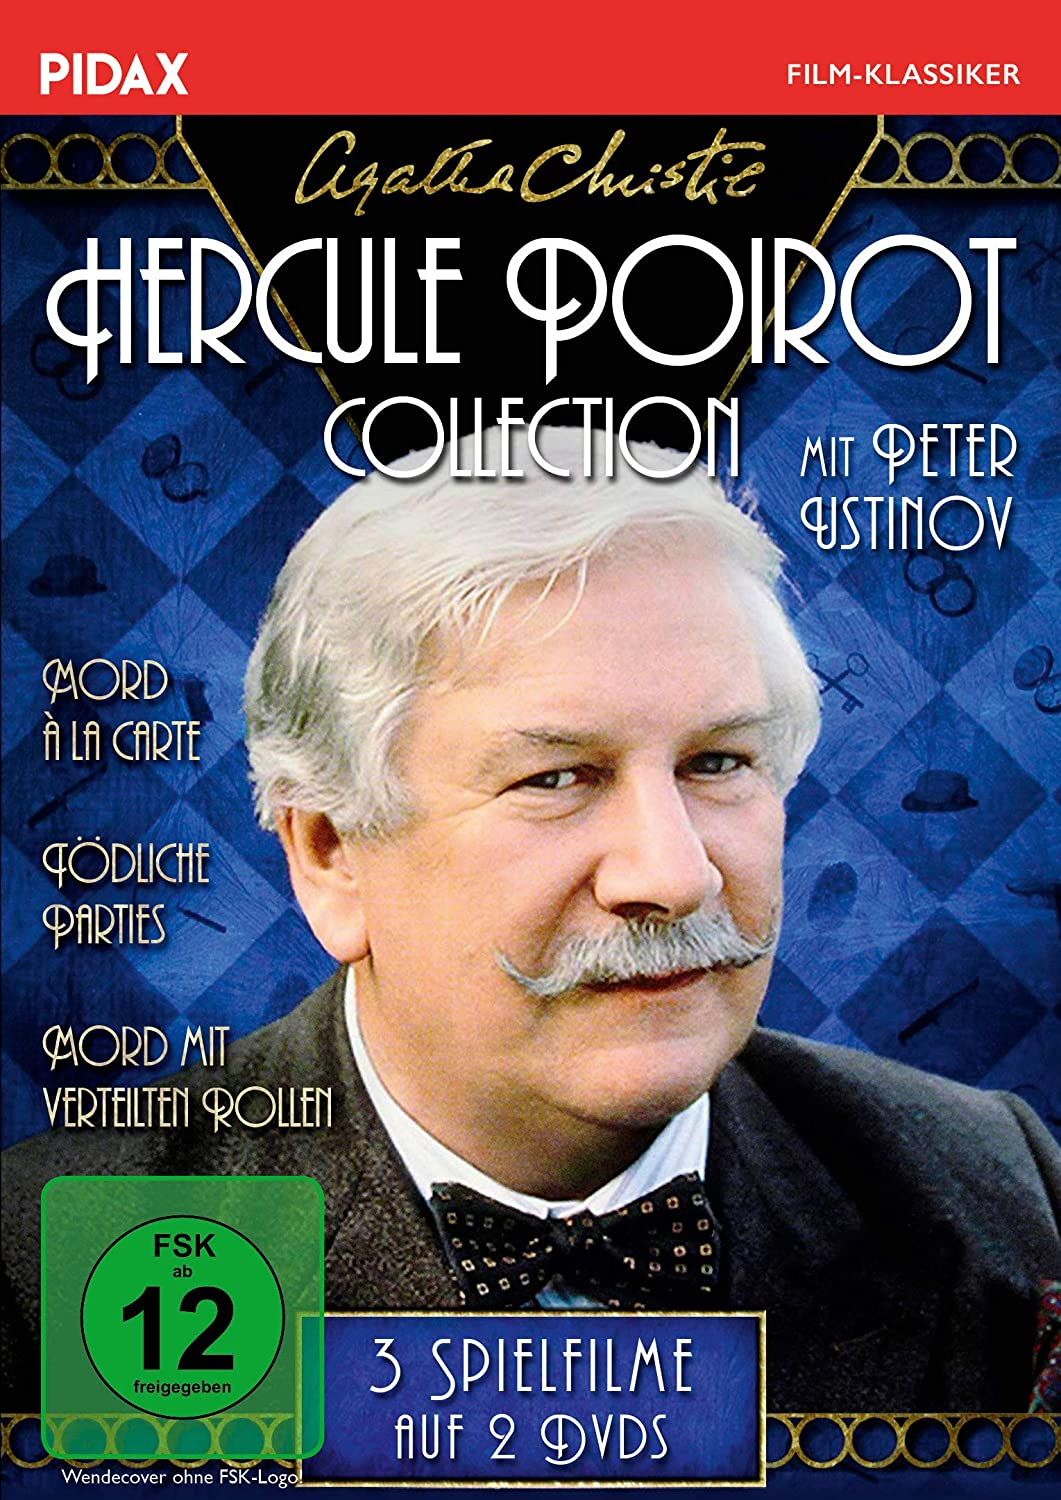 Agatha Christie: Hercule Poirot-Collection, Peter Ustinov